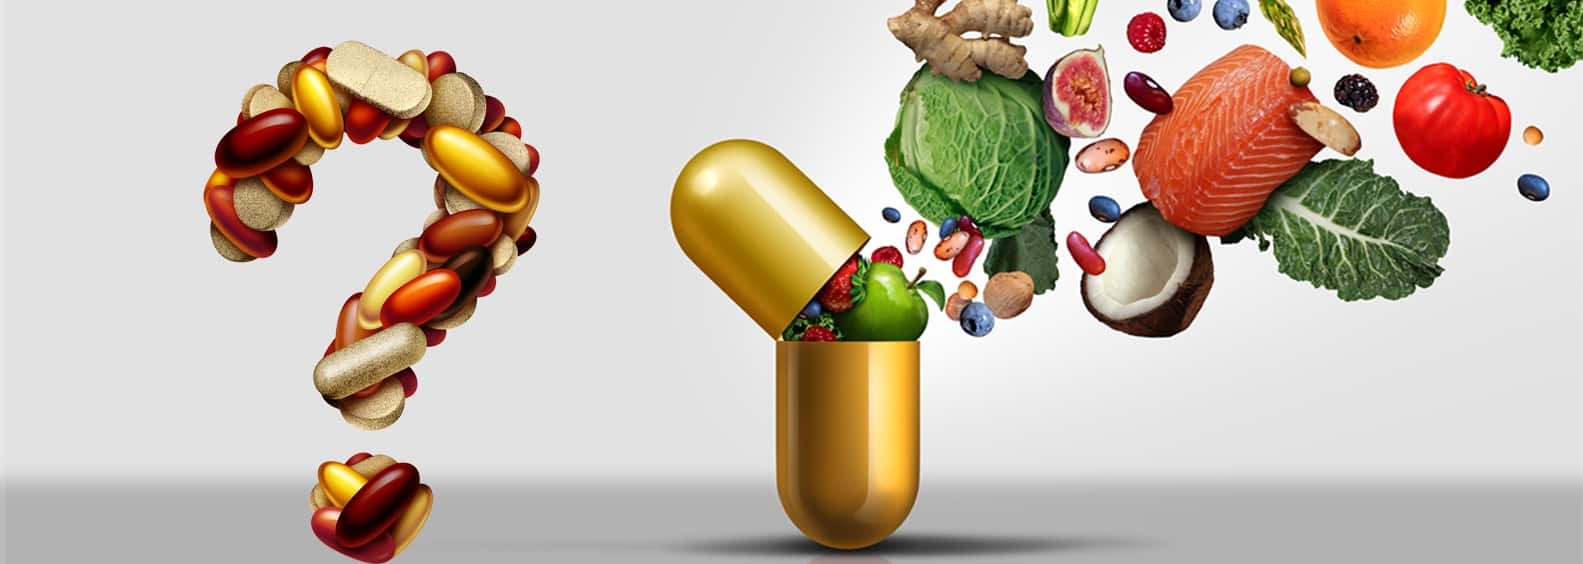 What Supplements Should I Take on a Daily Basis